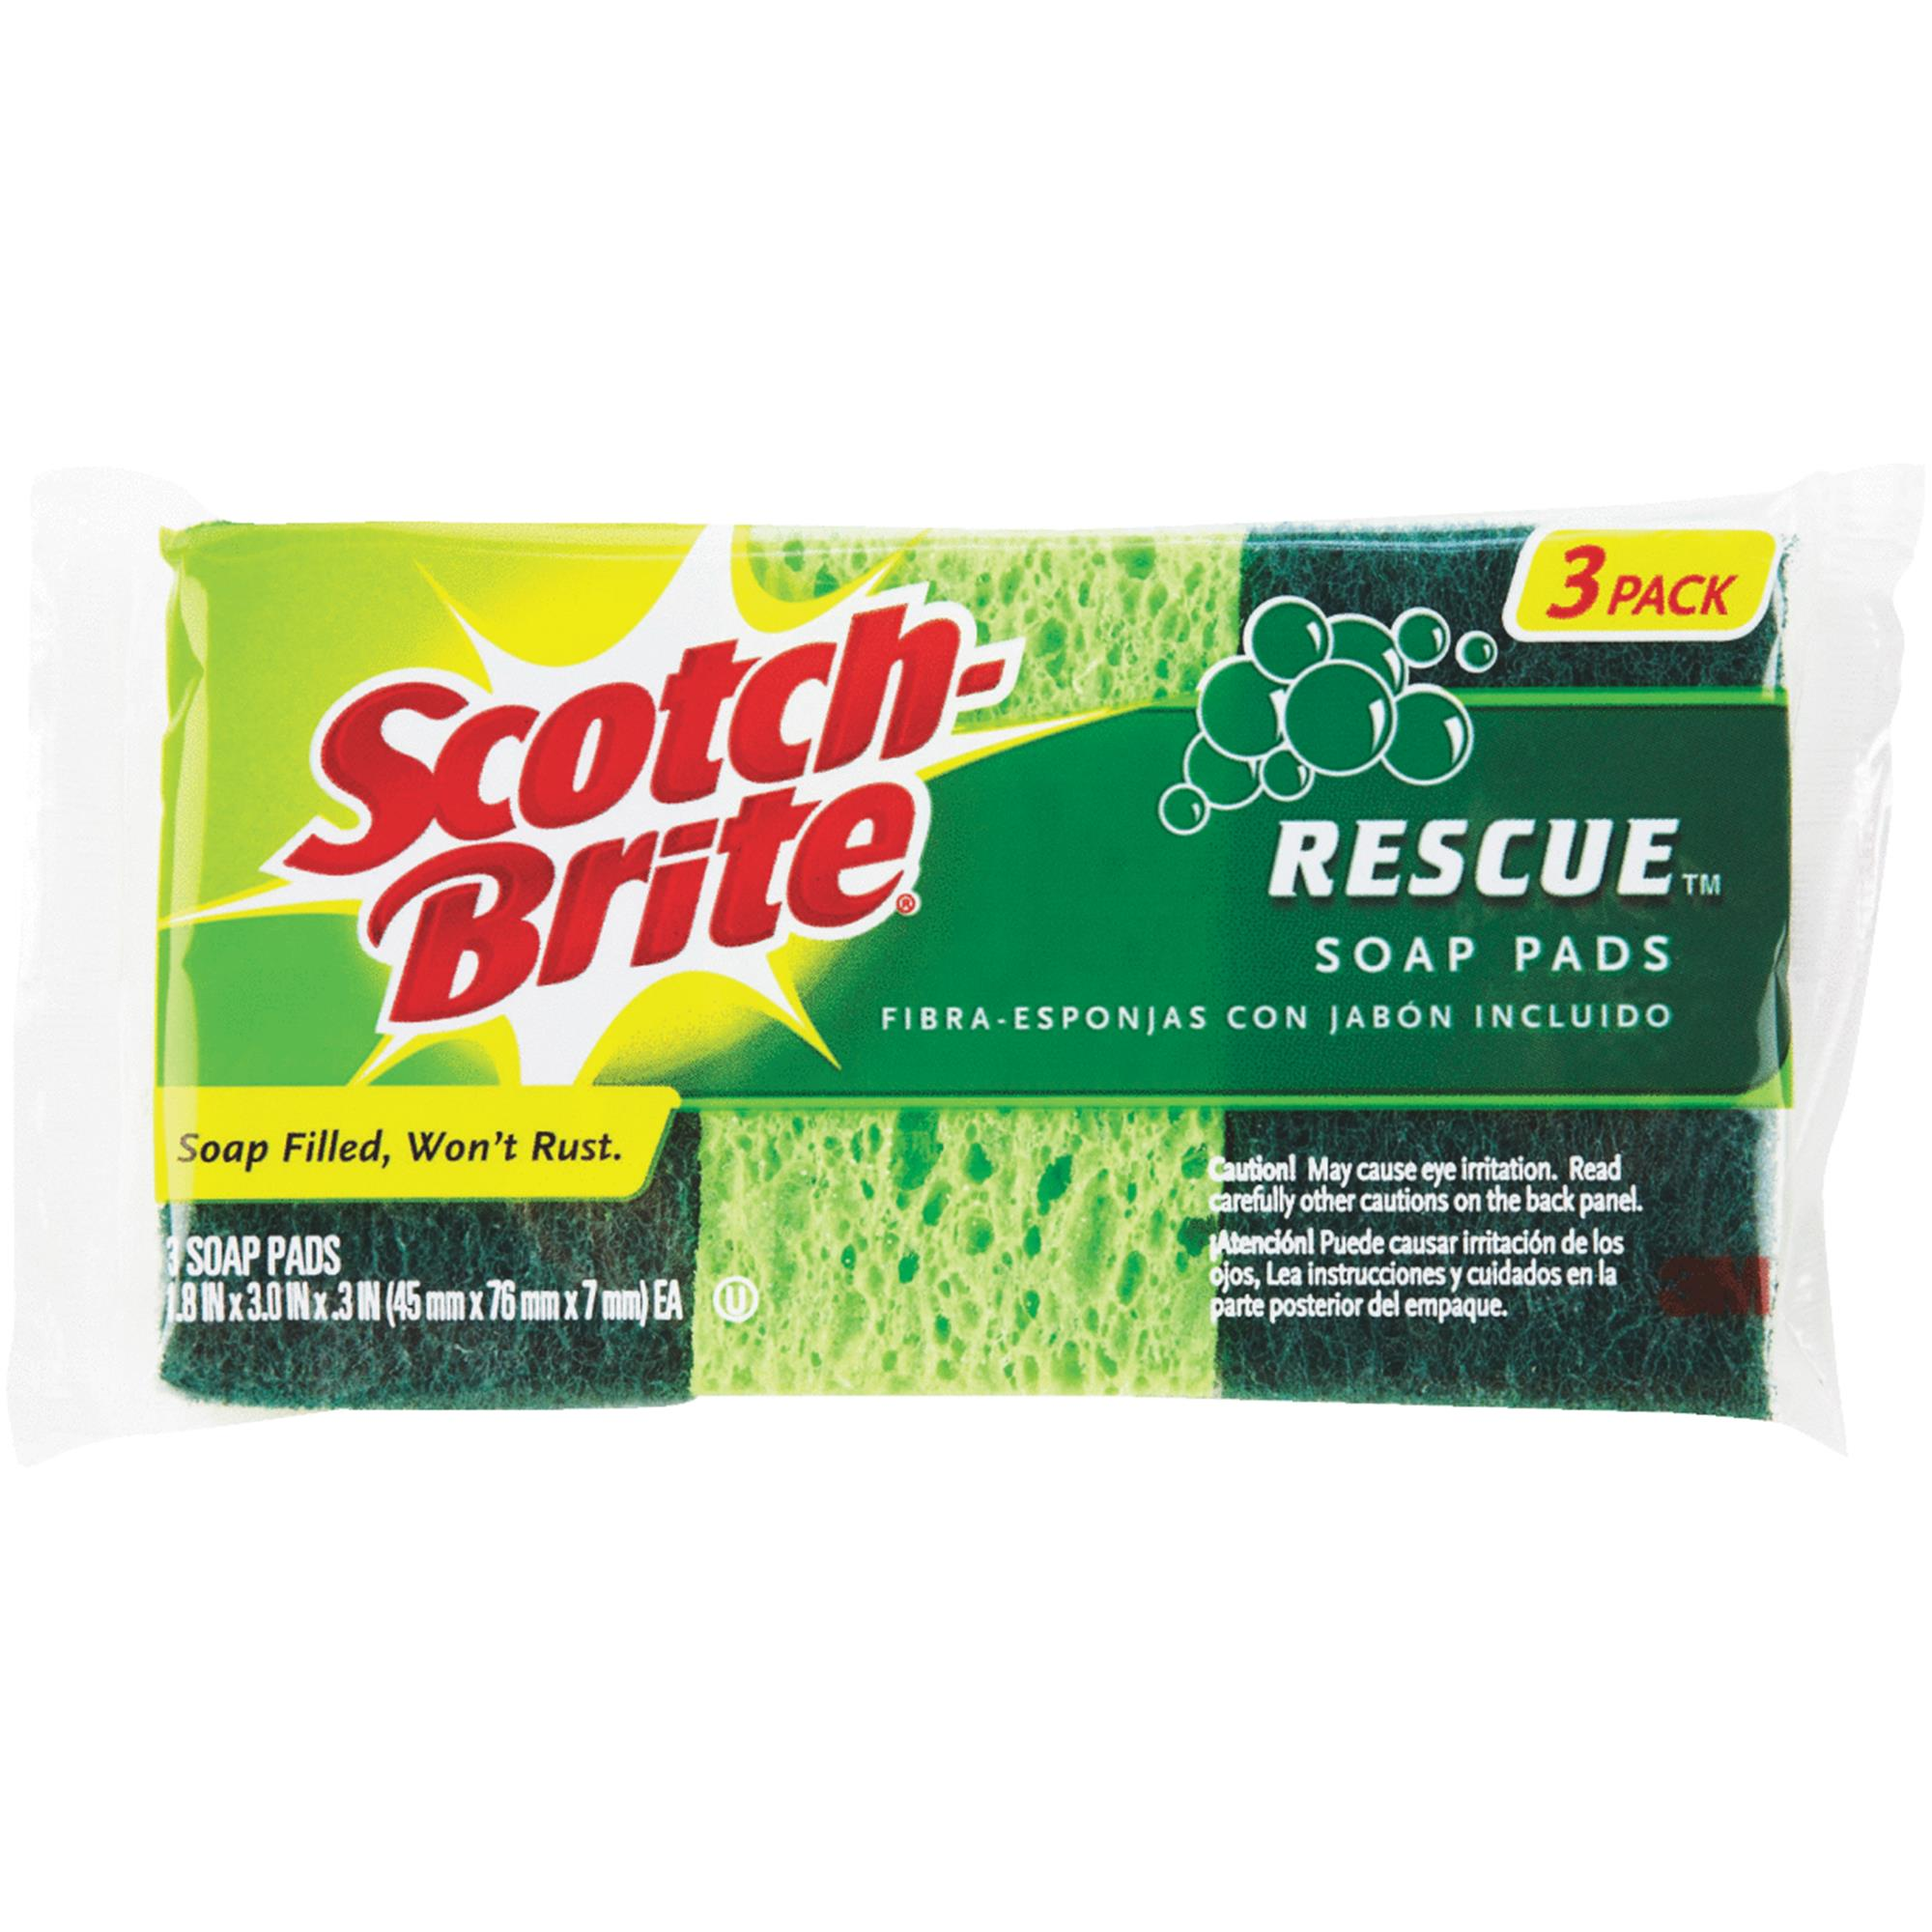 Scotch-Brite Soap Filled Scouring Pad